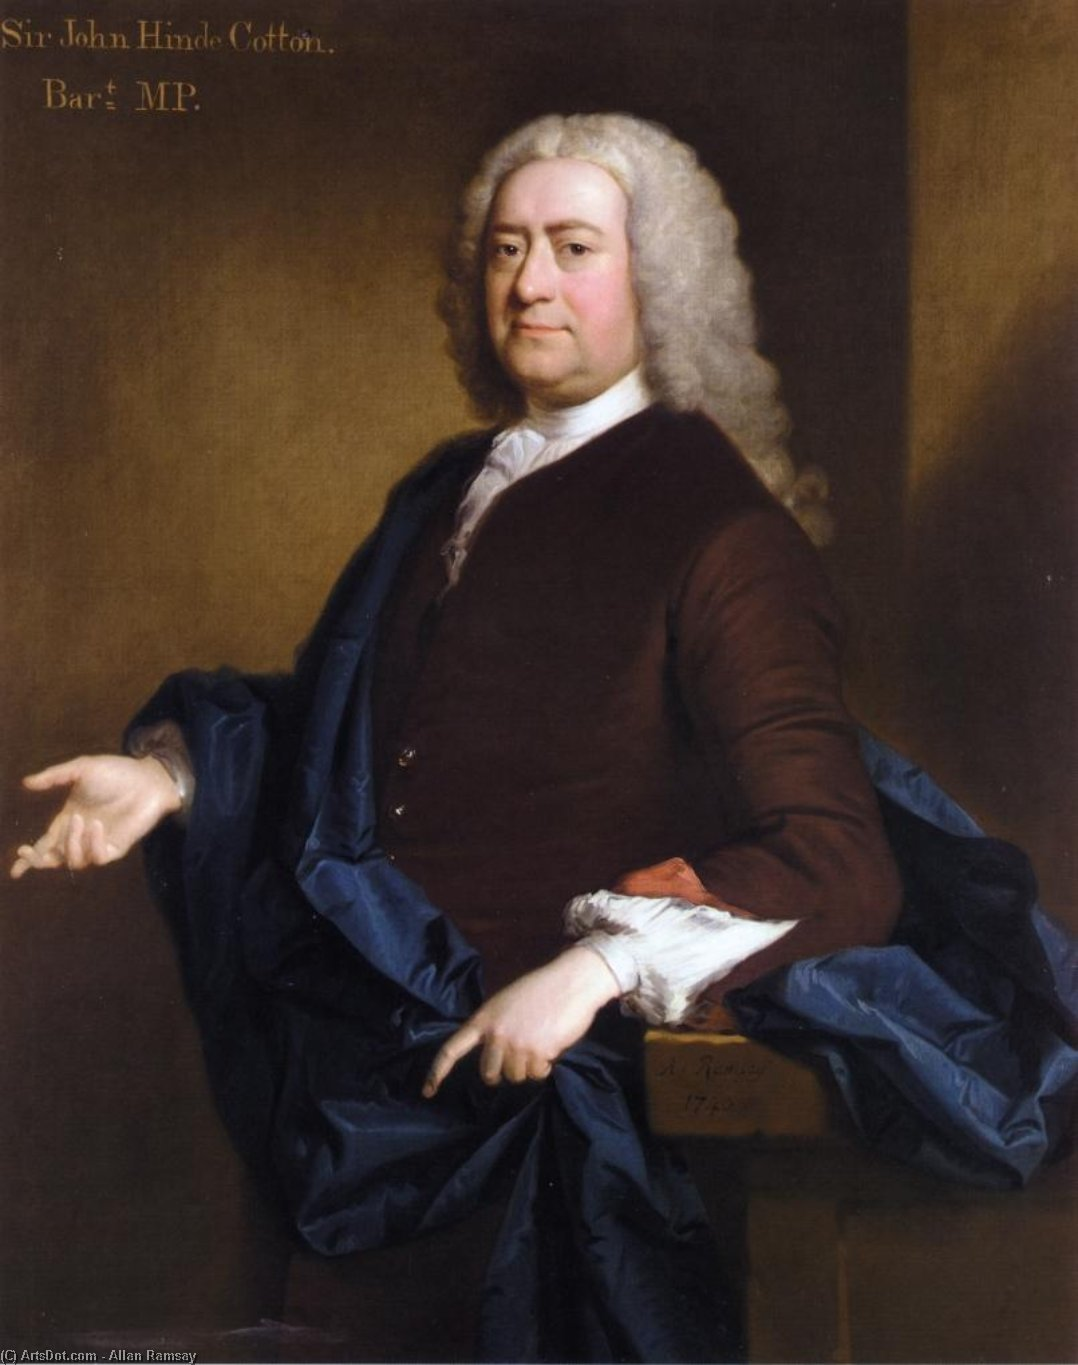 Wikioo.org - The Encyclopedia of Fine Arts - Painting, Artwork by Allan Ramsay - Portrait of Sir John Hynde Cotton, 3rd BT